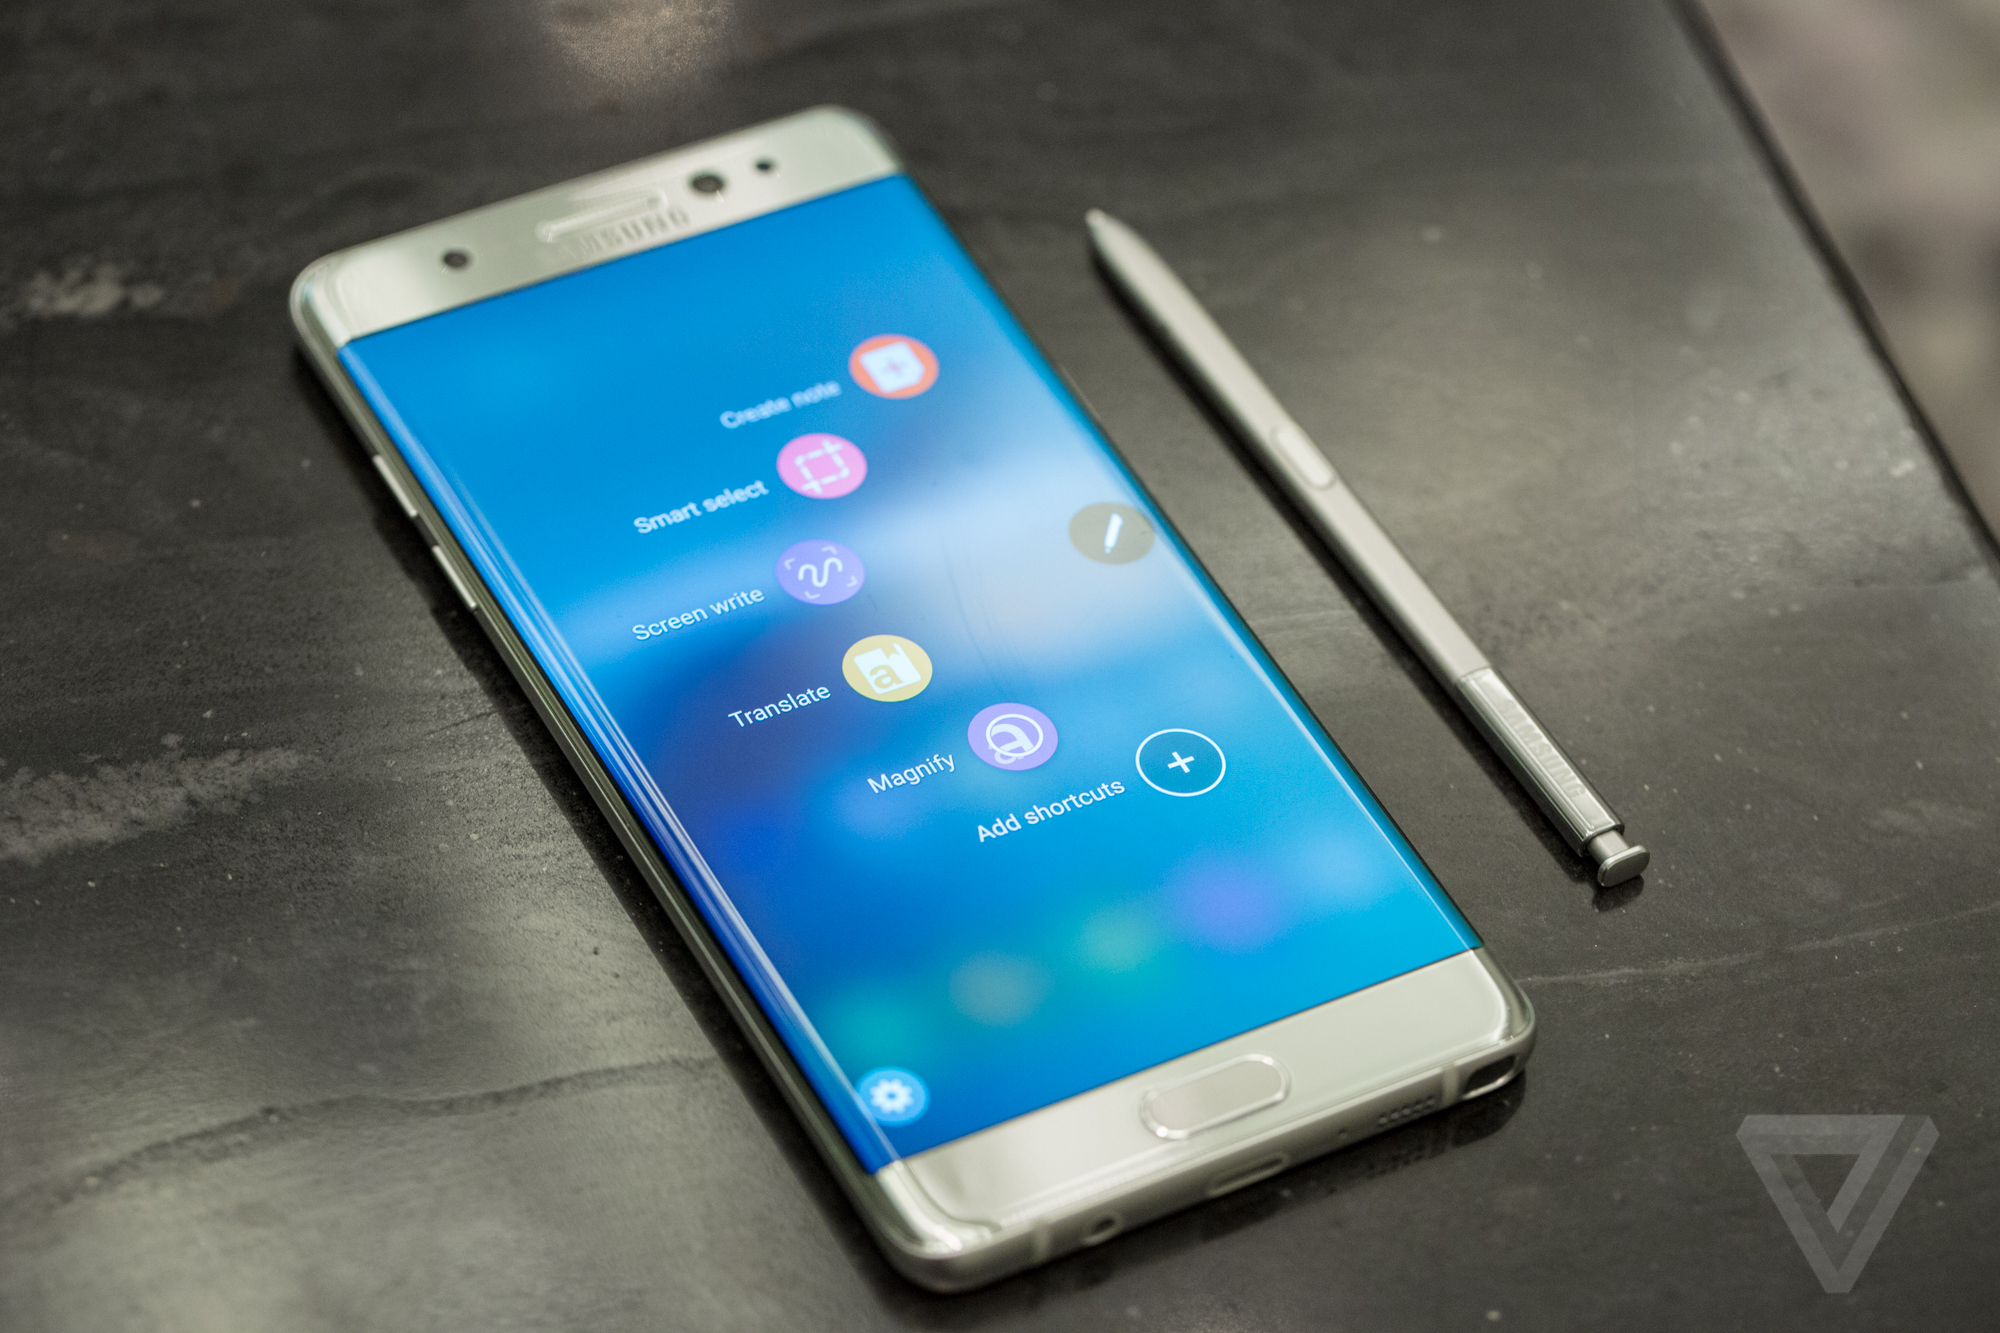 Samsung Galaxy Note 7 arrives August 19th with curved display, iris